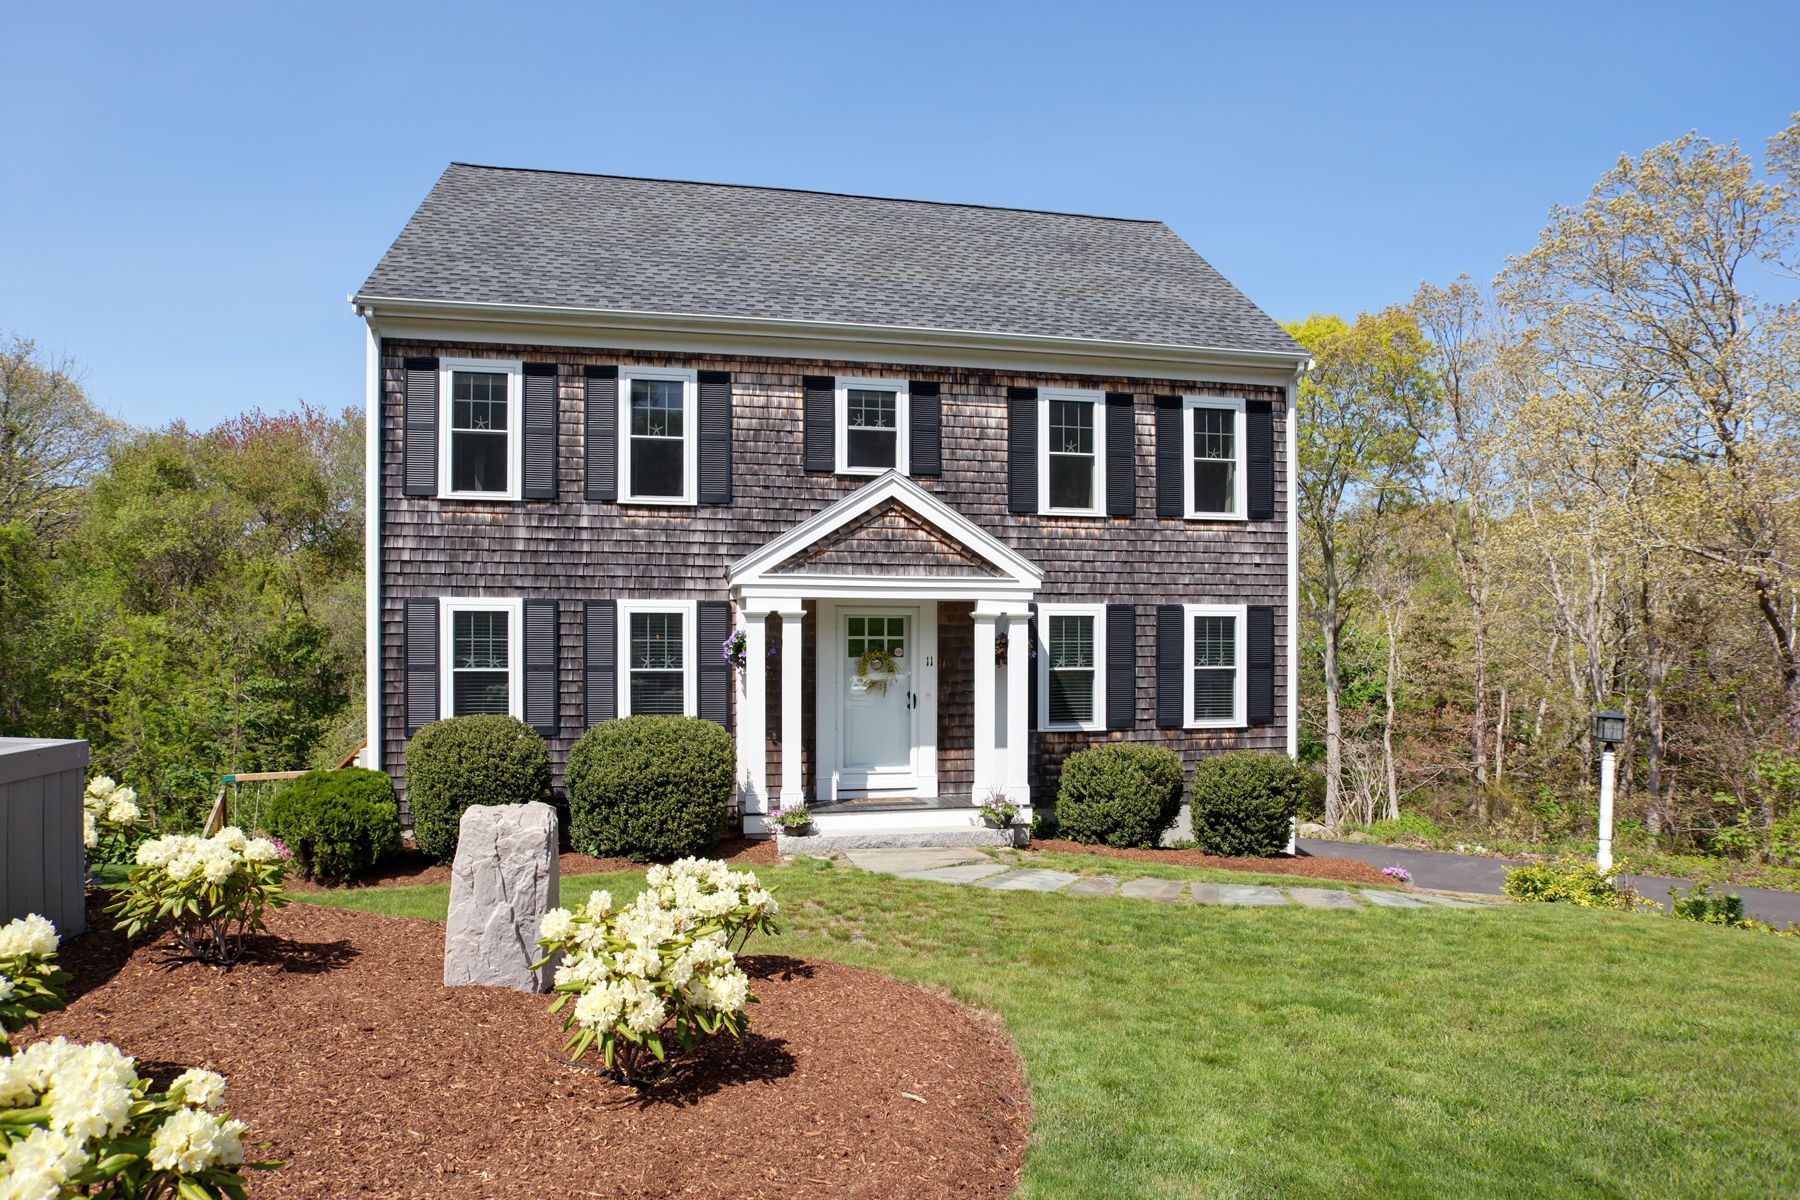 Single Family Homes for Active at 11 Oyster Hill Drive Sandwich, Massachusetts 02563 United States